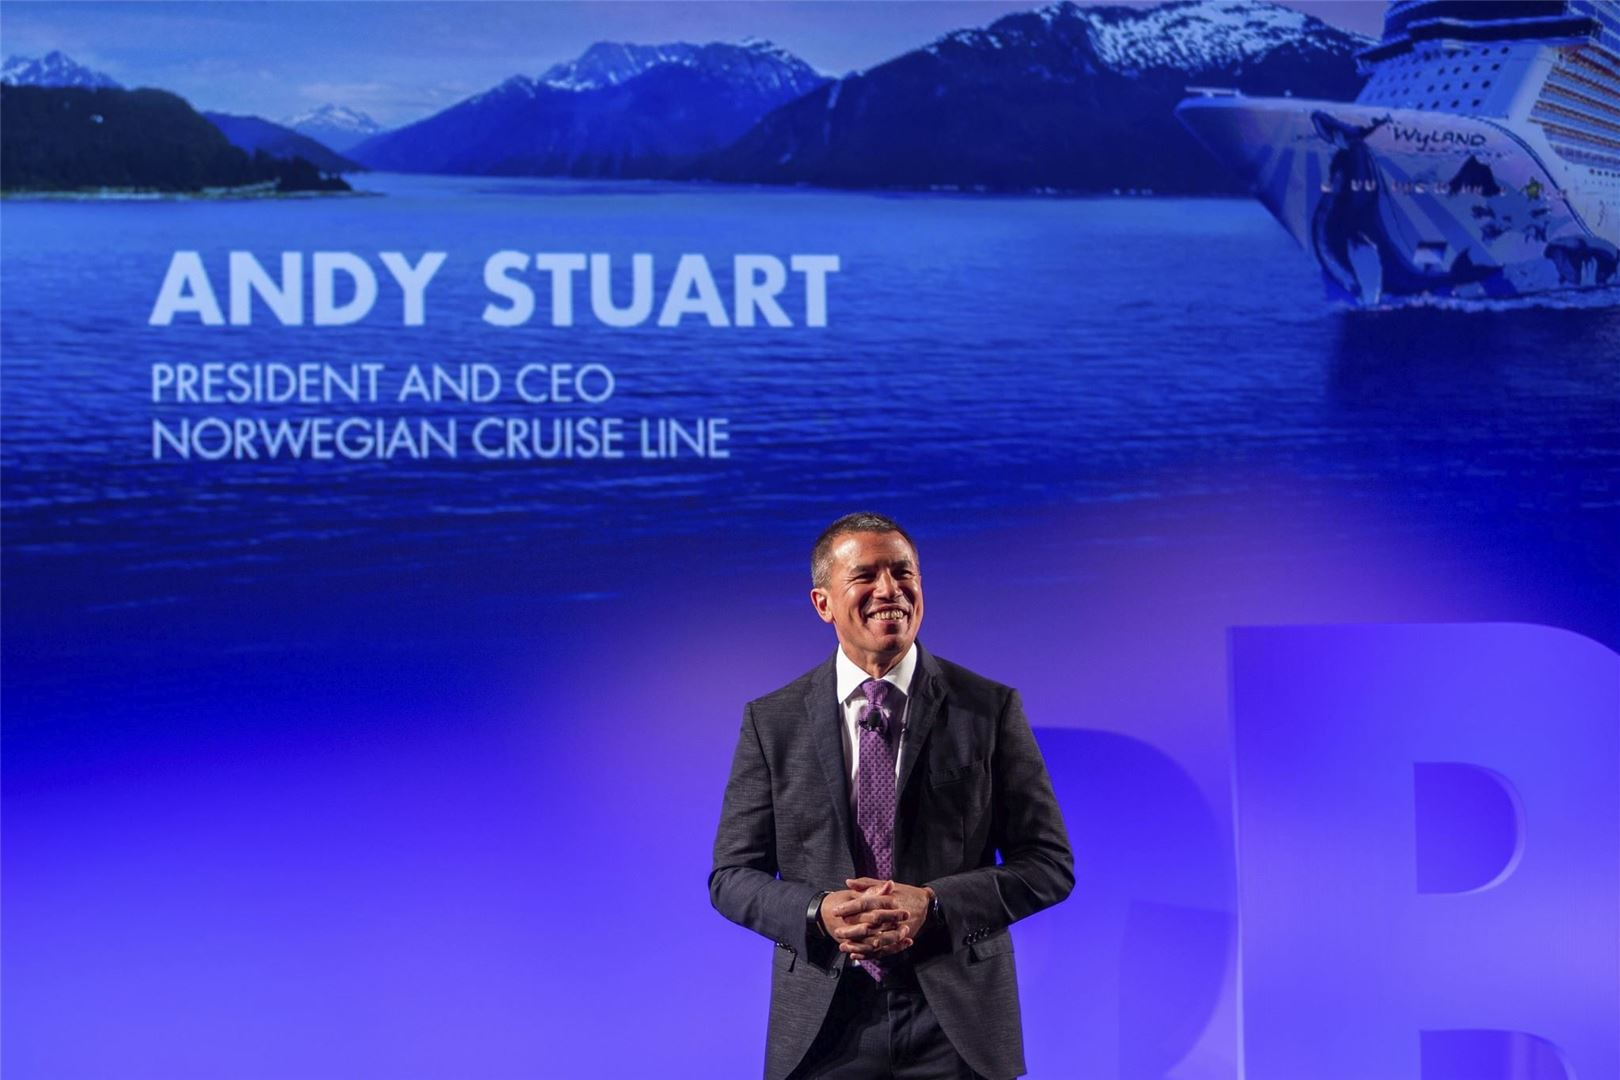 Andy Stuart to Step Down at Norwegian Cruise Line